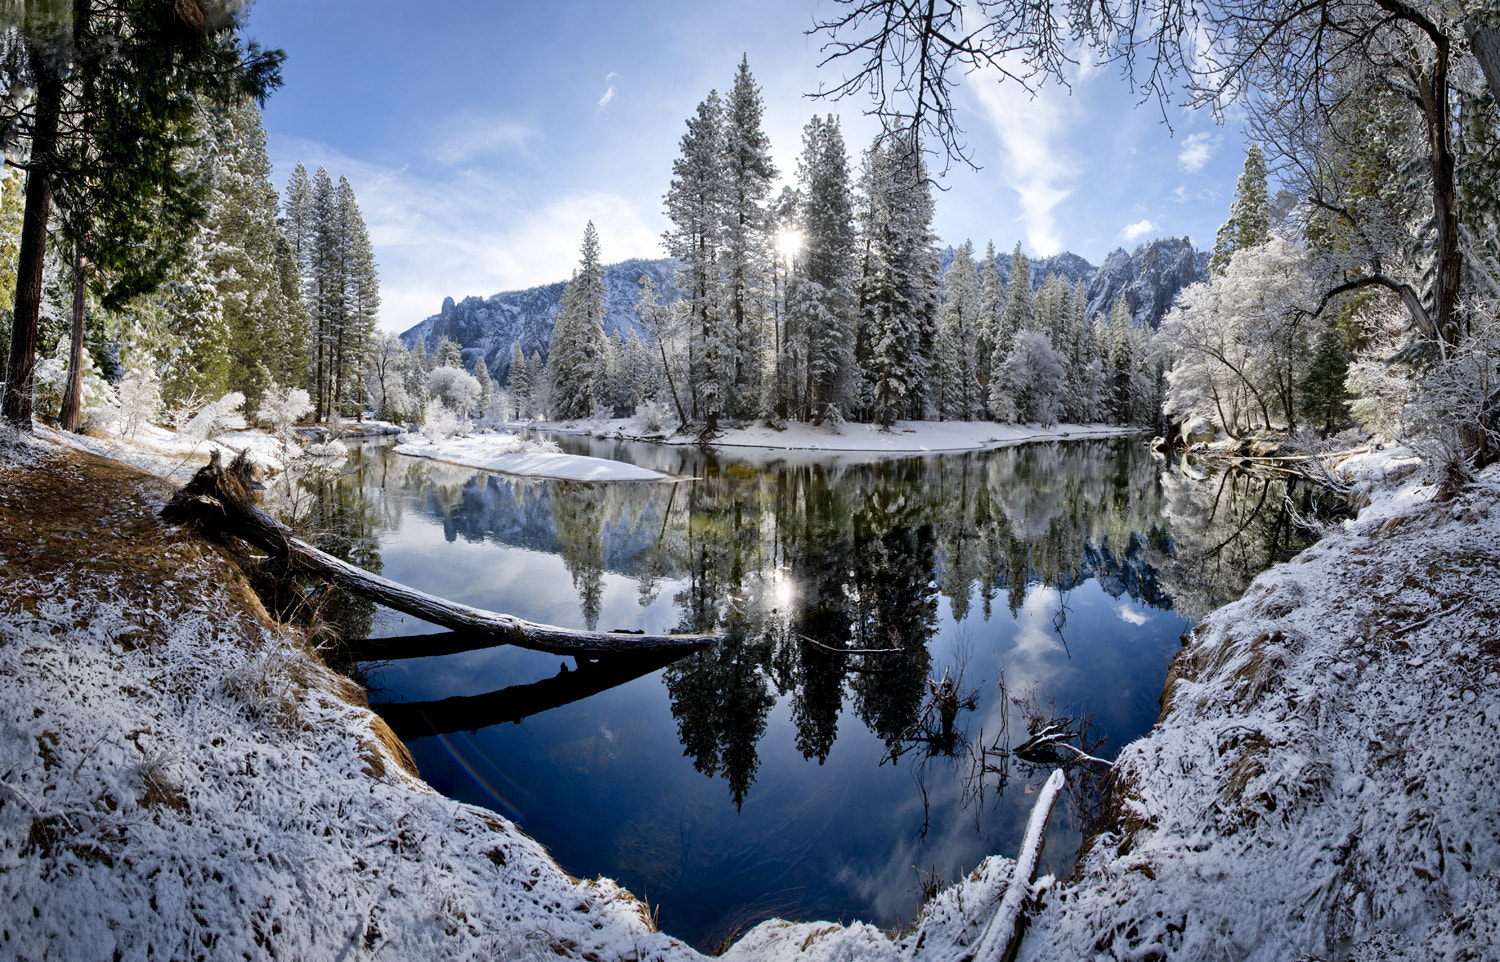 Photograph A Winter Morning In Yosemite by William McIntosh on 500px